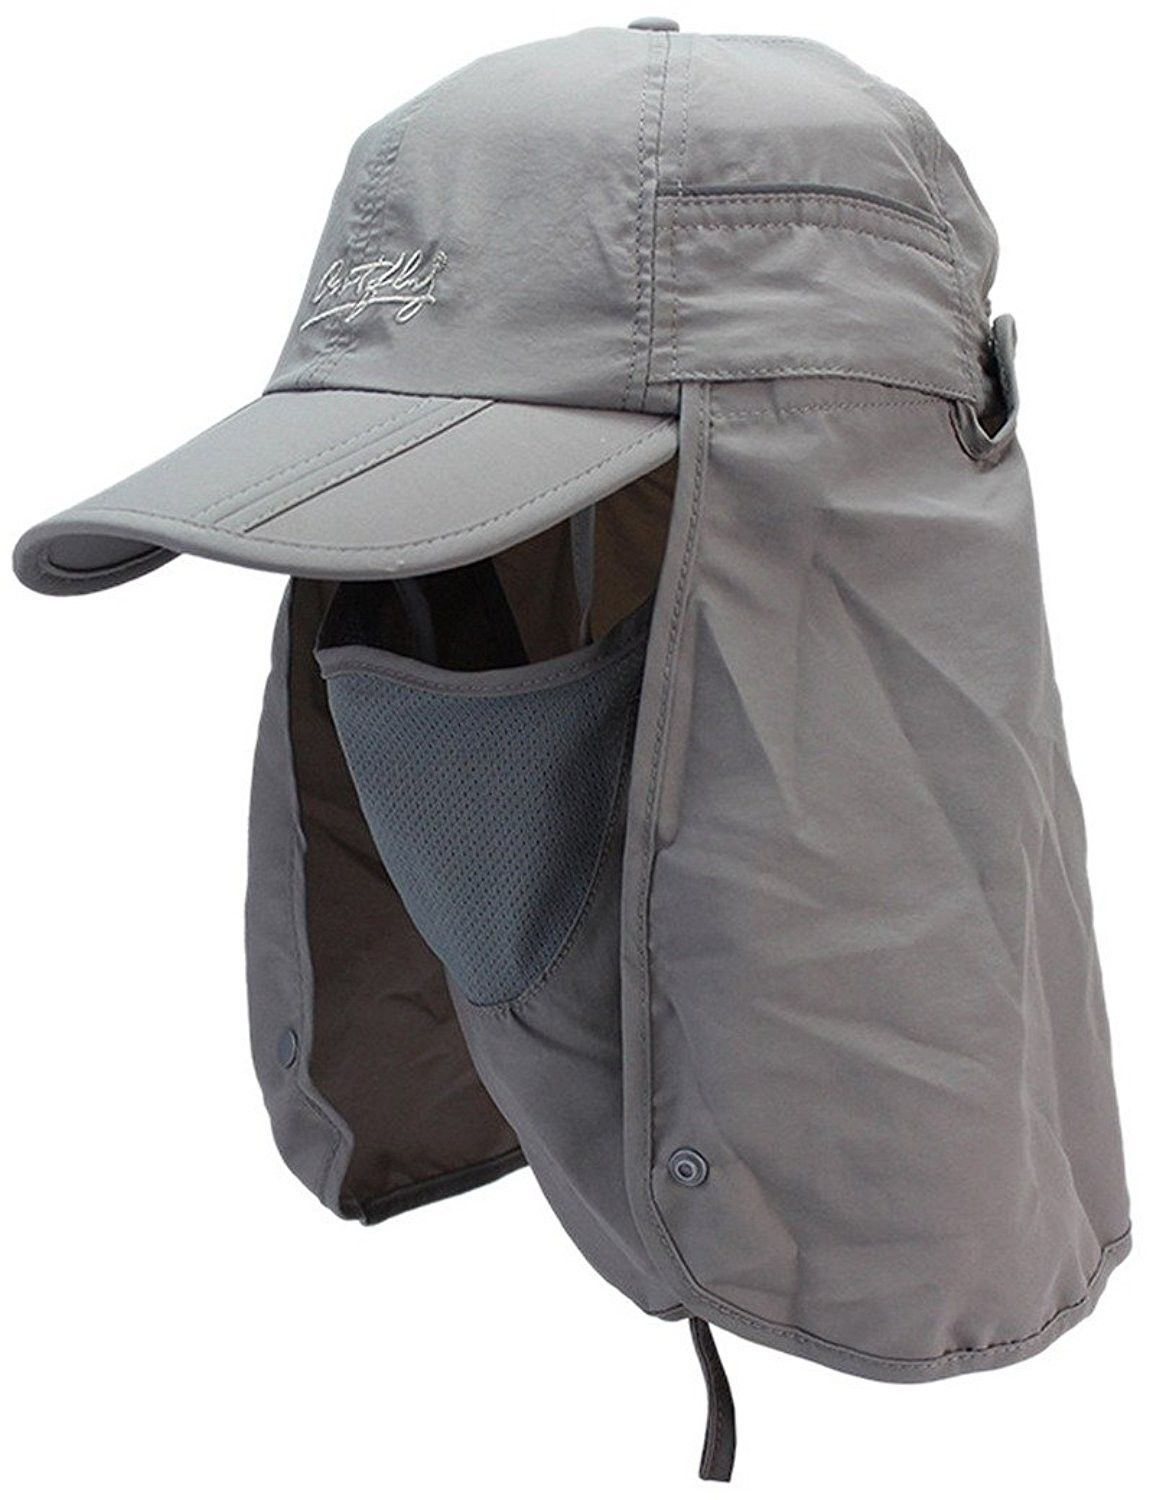 Outdoor Sun Protection Hat Folding Neck Flap Cap With Removable Shield And Mask Grey Co12grs0ihz Sun Protection Hat Mens Sun Hats Outdoor Sun Protection